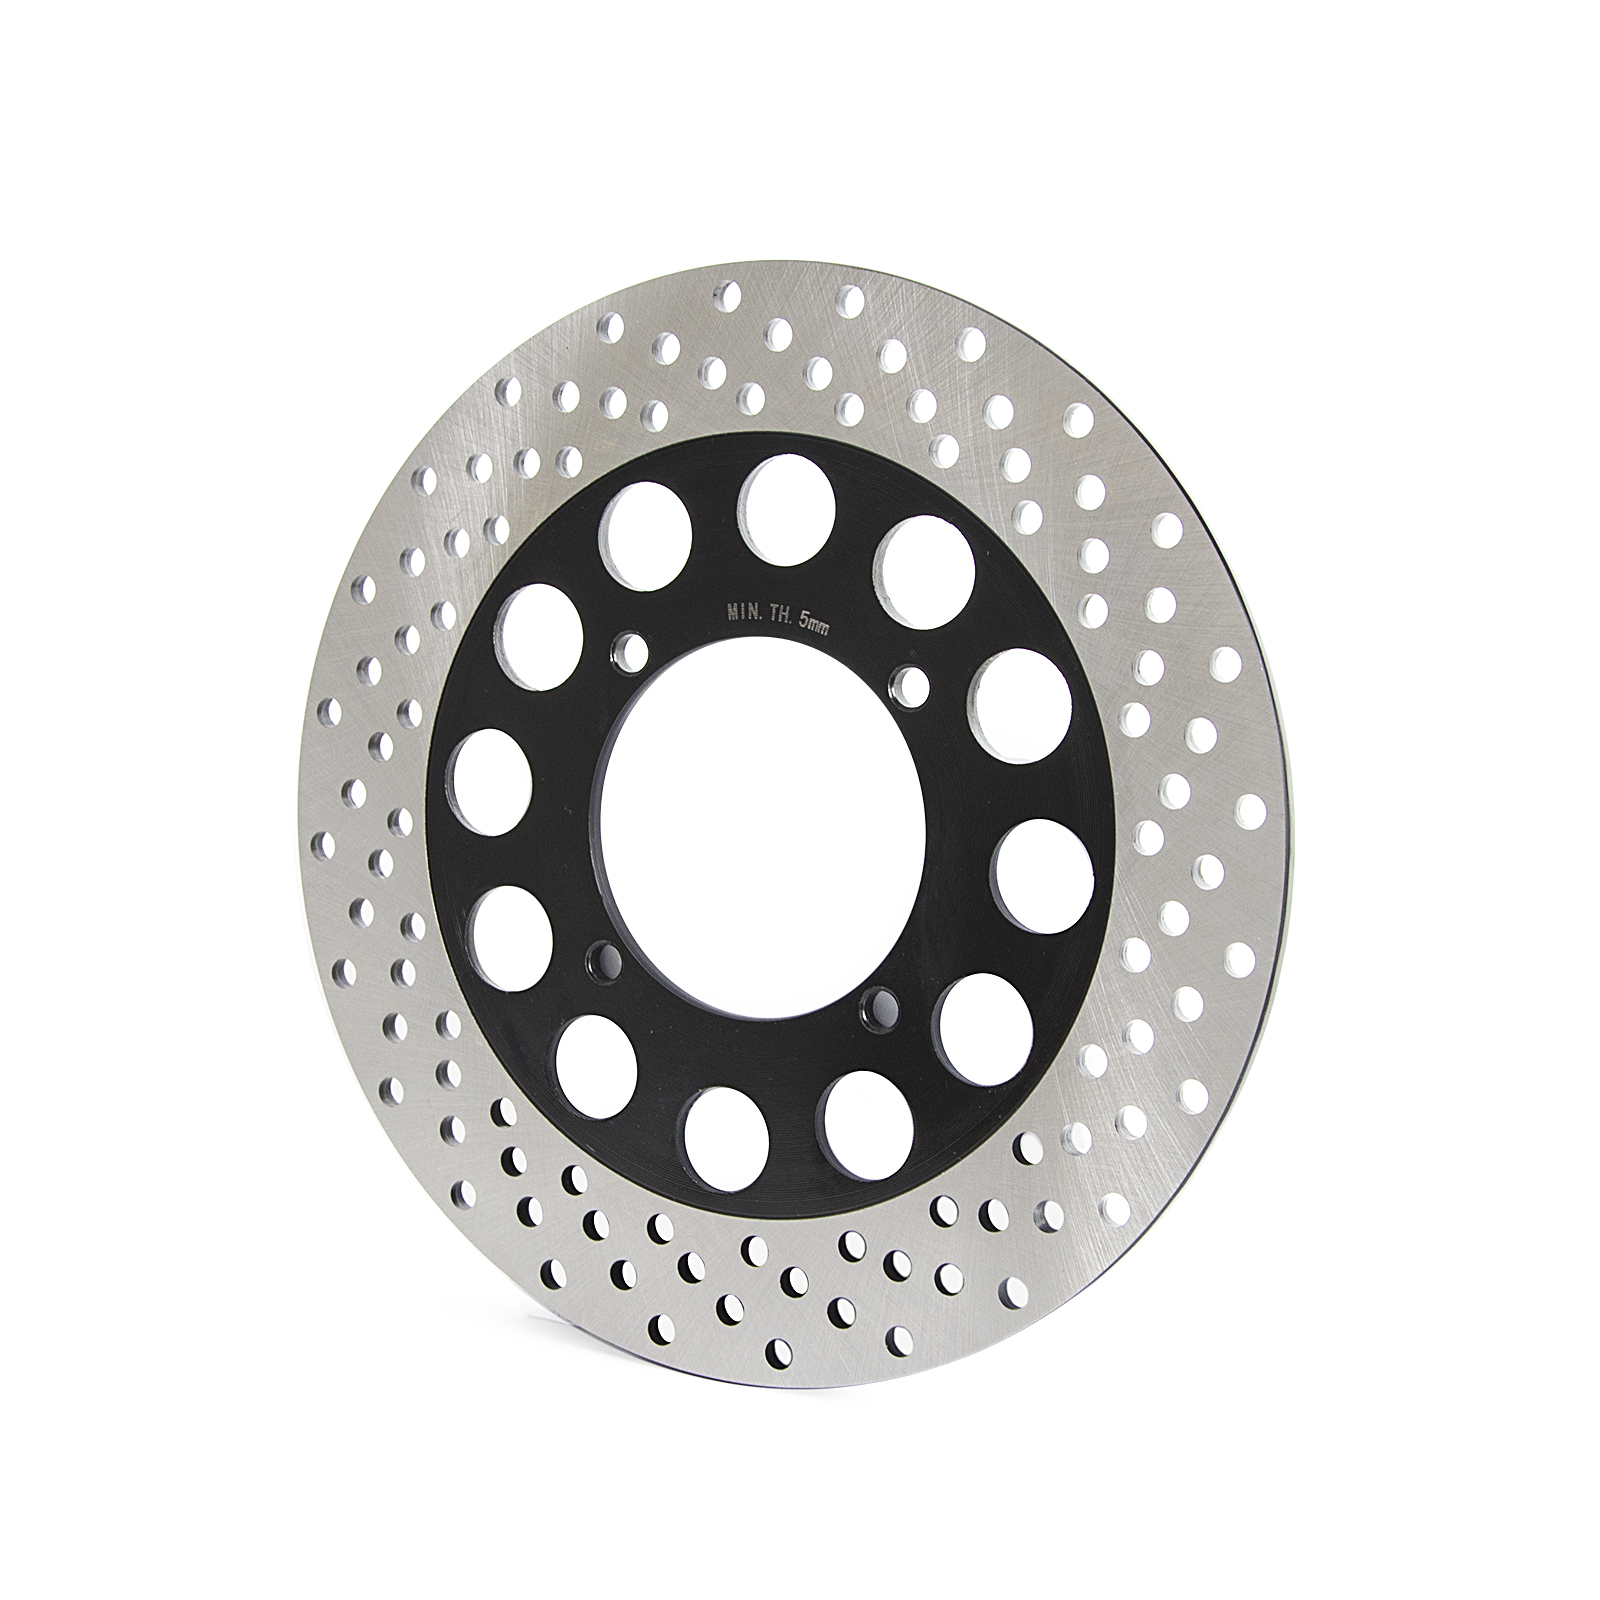 NICECNC Steel Rear Brake Disc Rotor For Suzuki GSF 250 N/NP/R/NR GSF 400 M/N/P Bandit GSX 400 GSX 600 750 GS500 1988-1997 rear brake steel disc rotor for suzuki gsxr1300 gsx r 1300 gsf1200 gs 1200